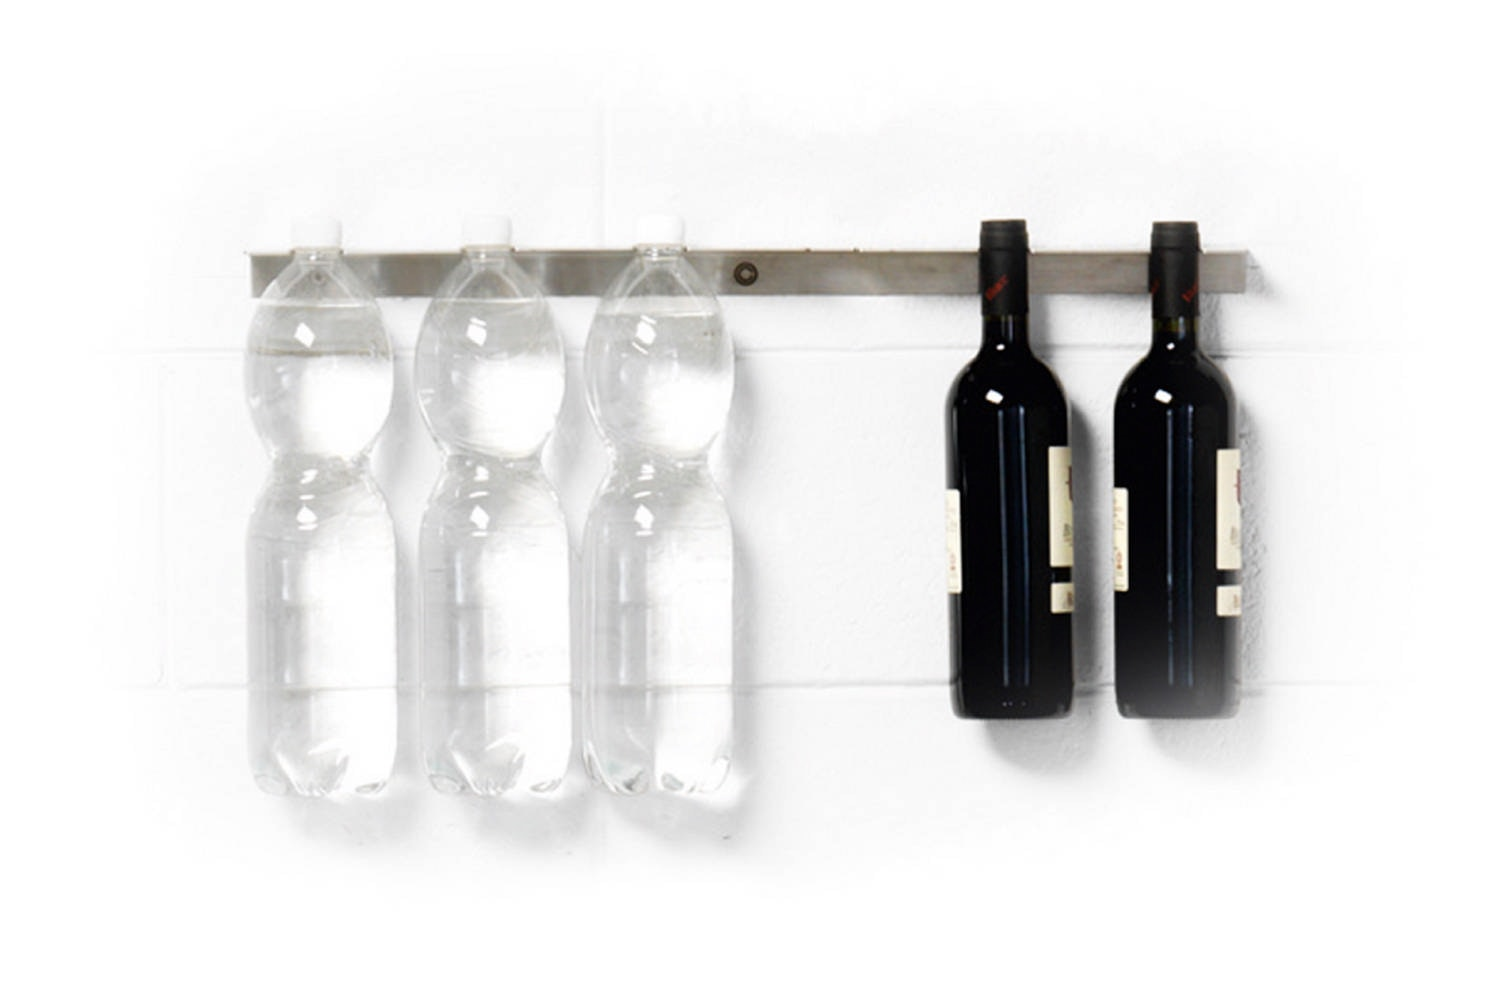 Inriga Wall Mounted Bottle Holder by Claudio Bitetti for Opinion Ciatti